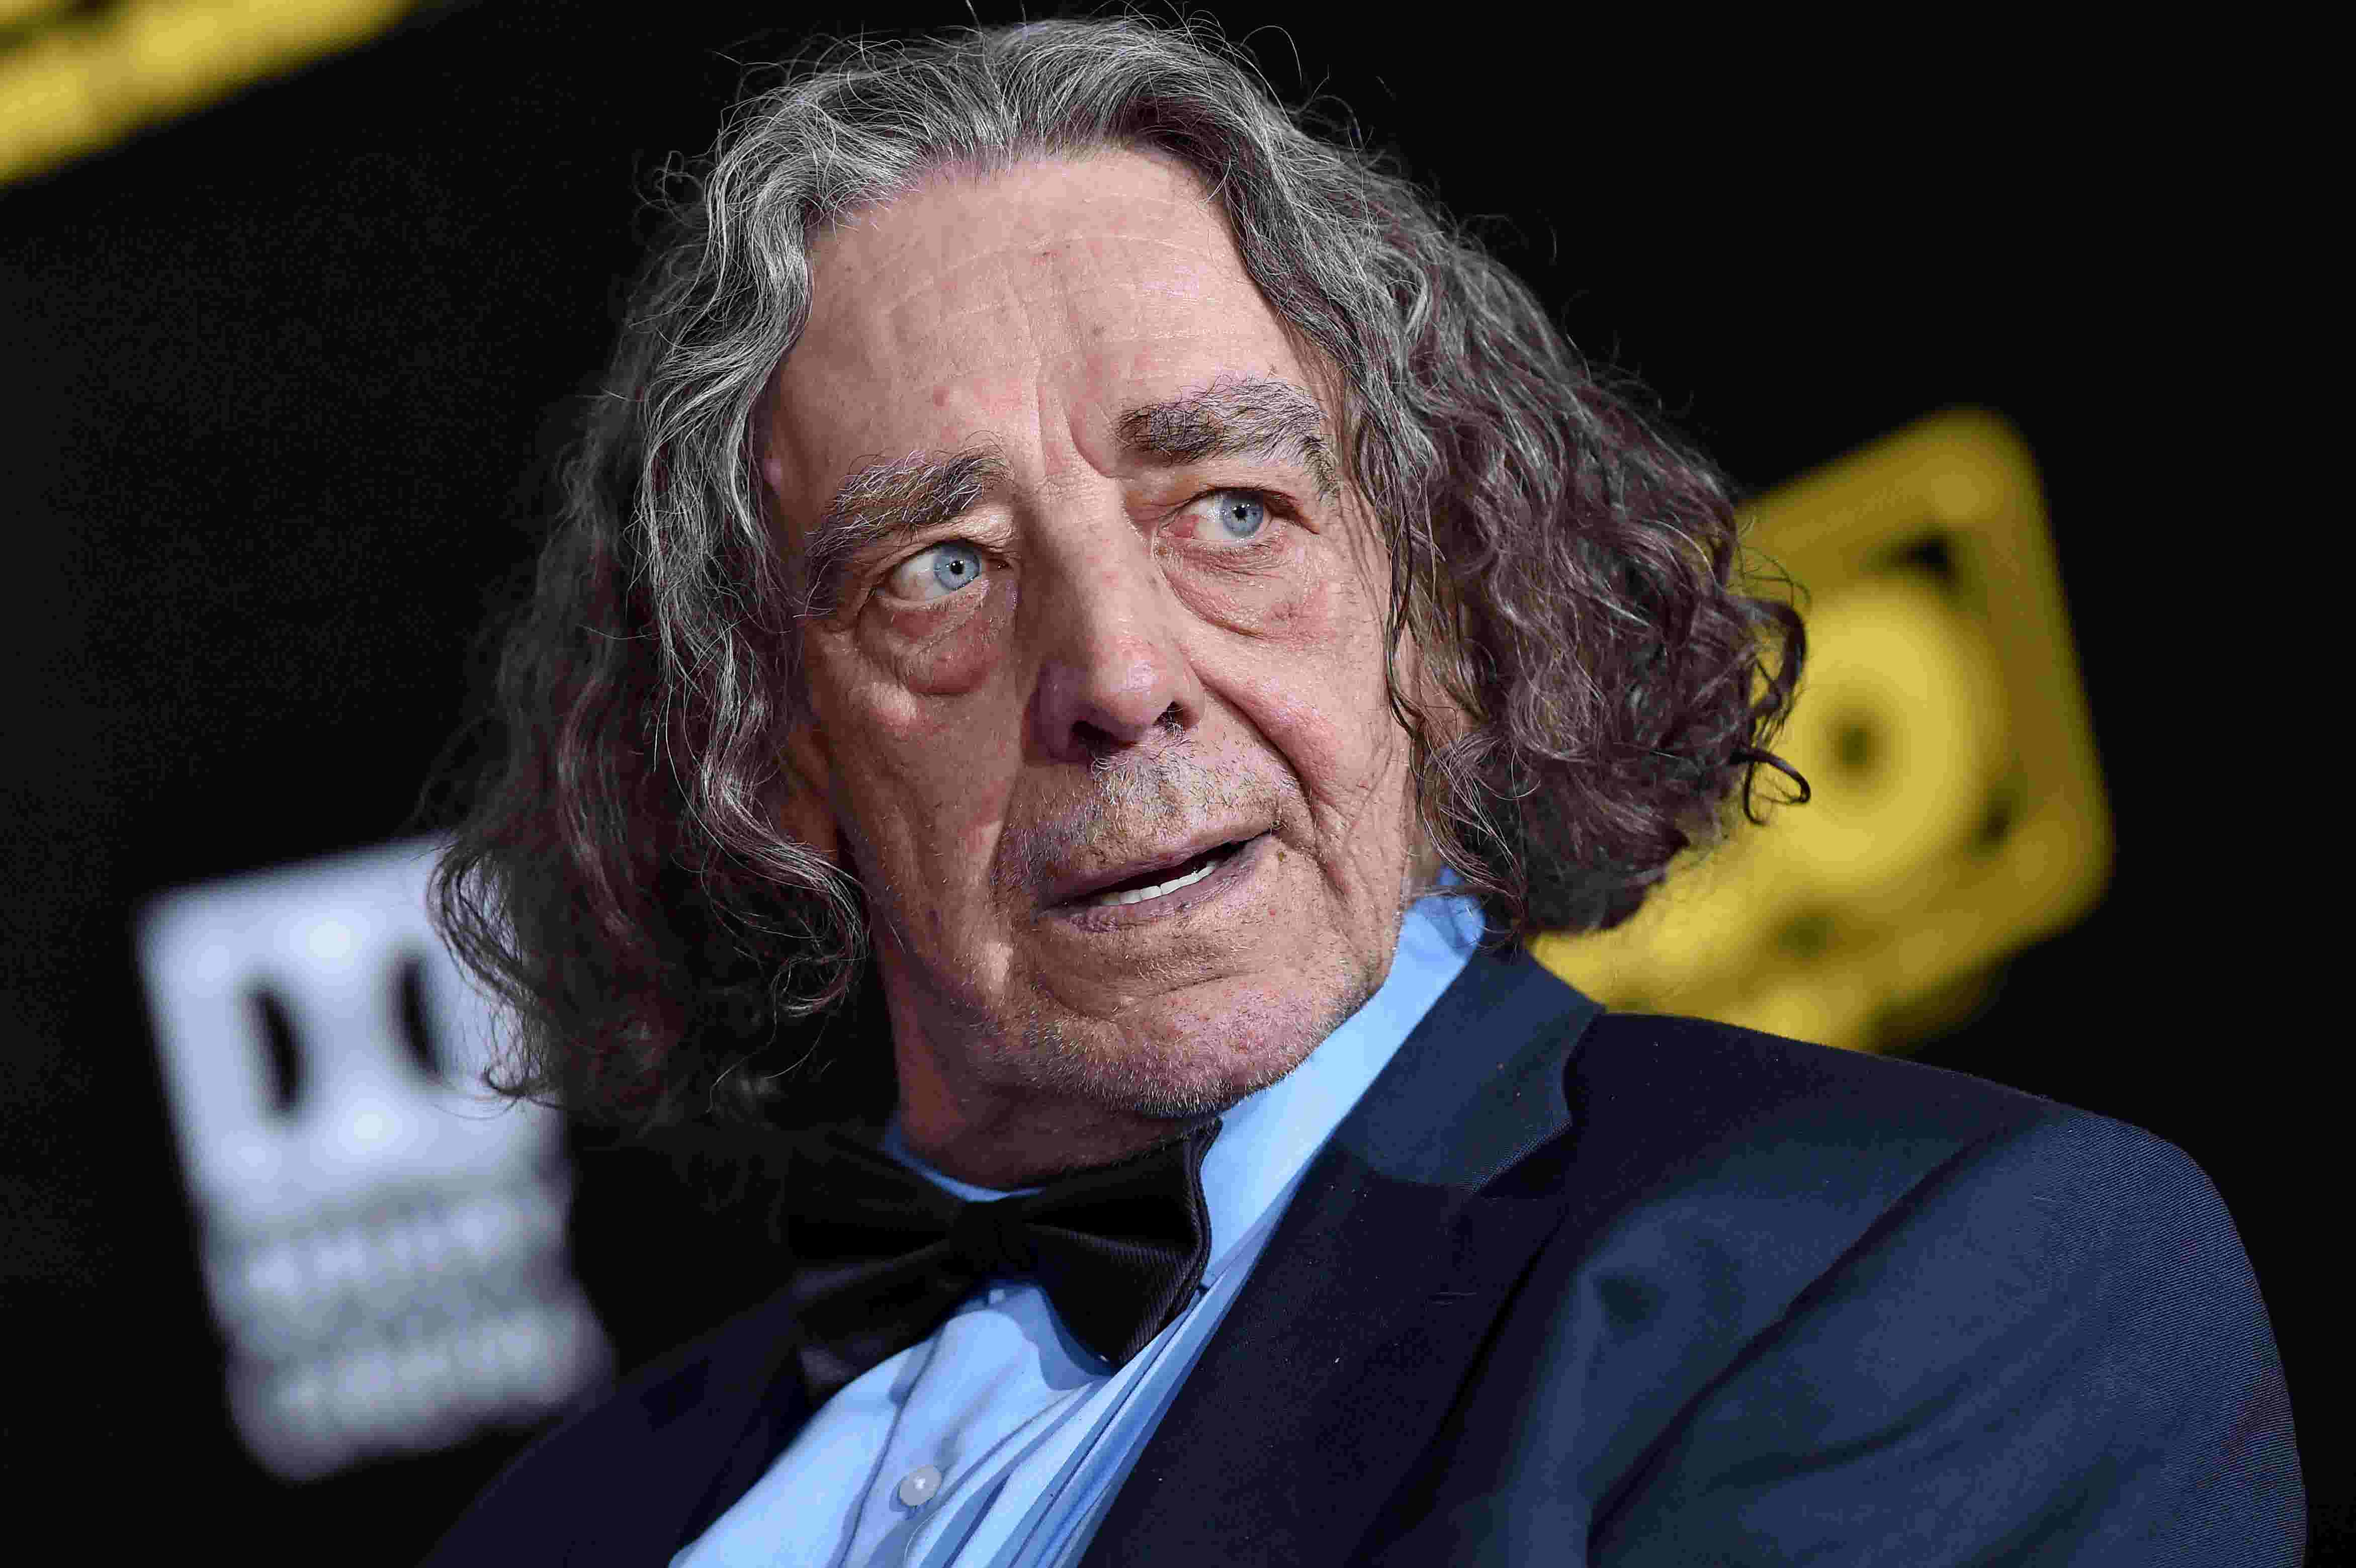 Peter Mayhew, best known for role as Chewbacca, dies at 74